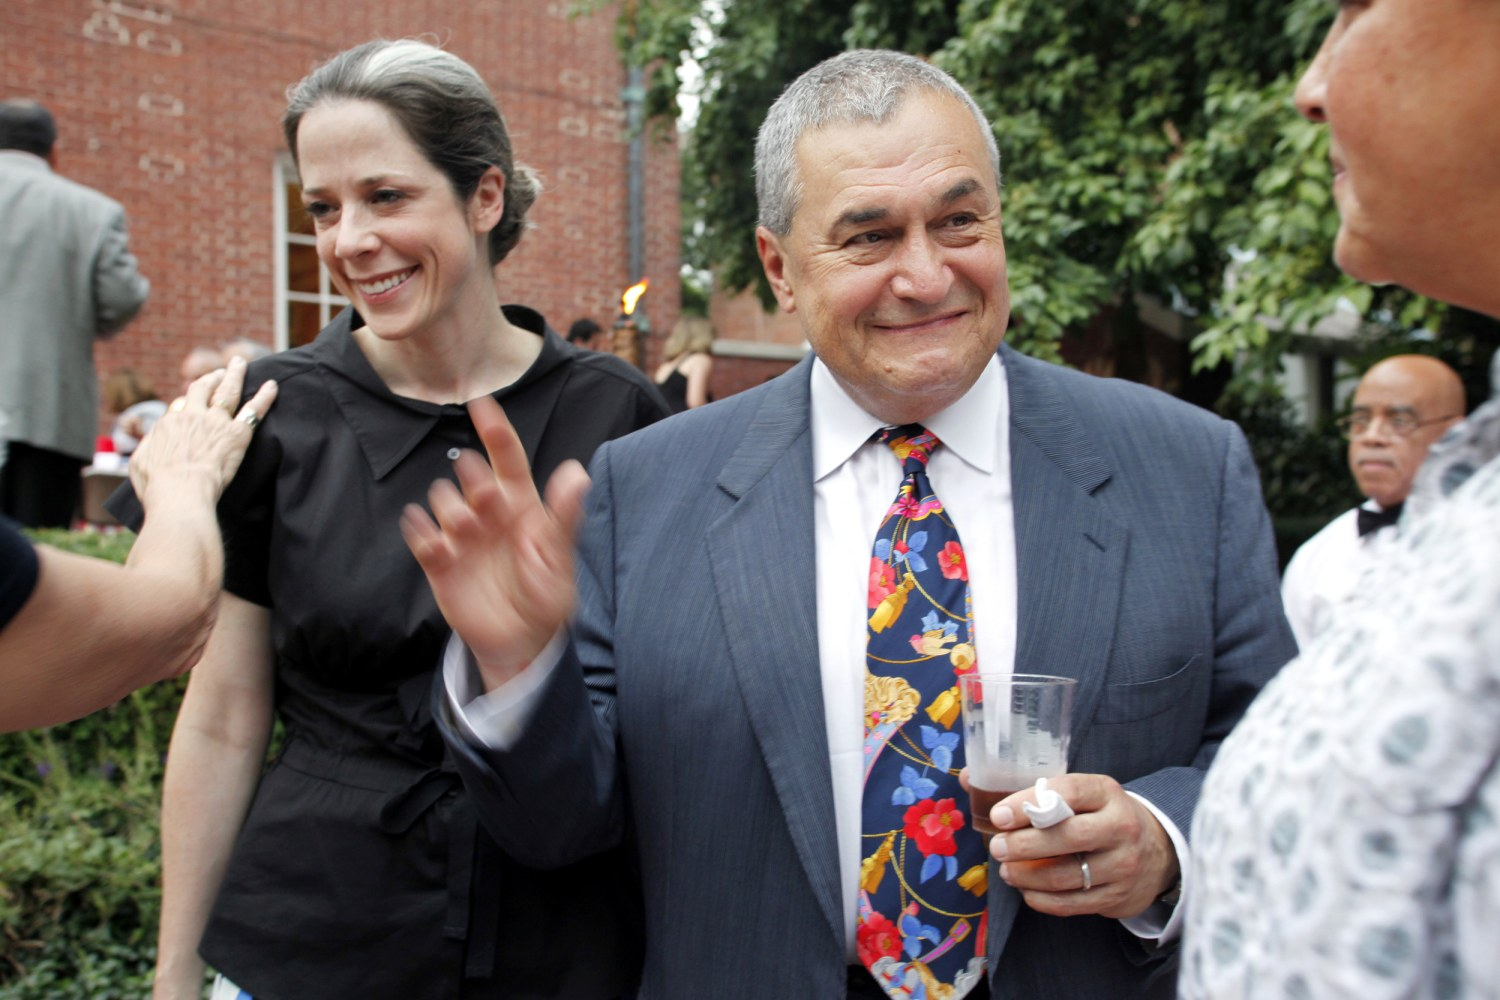 Democratic lobbyist Tony Podesta targeted in 'Trump-Russia' probe